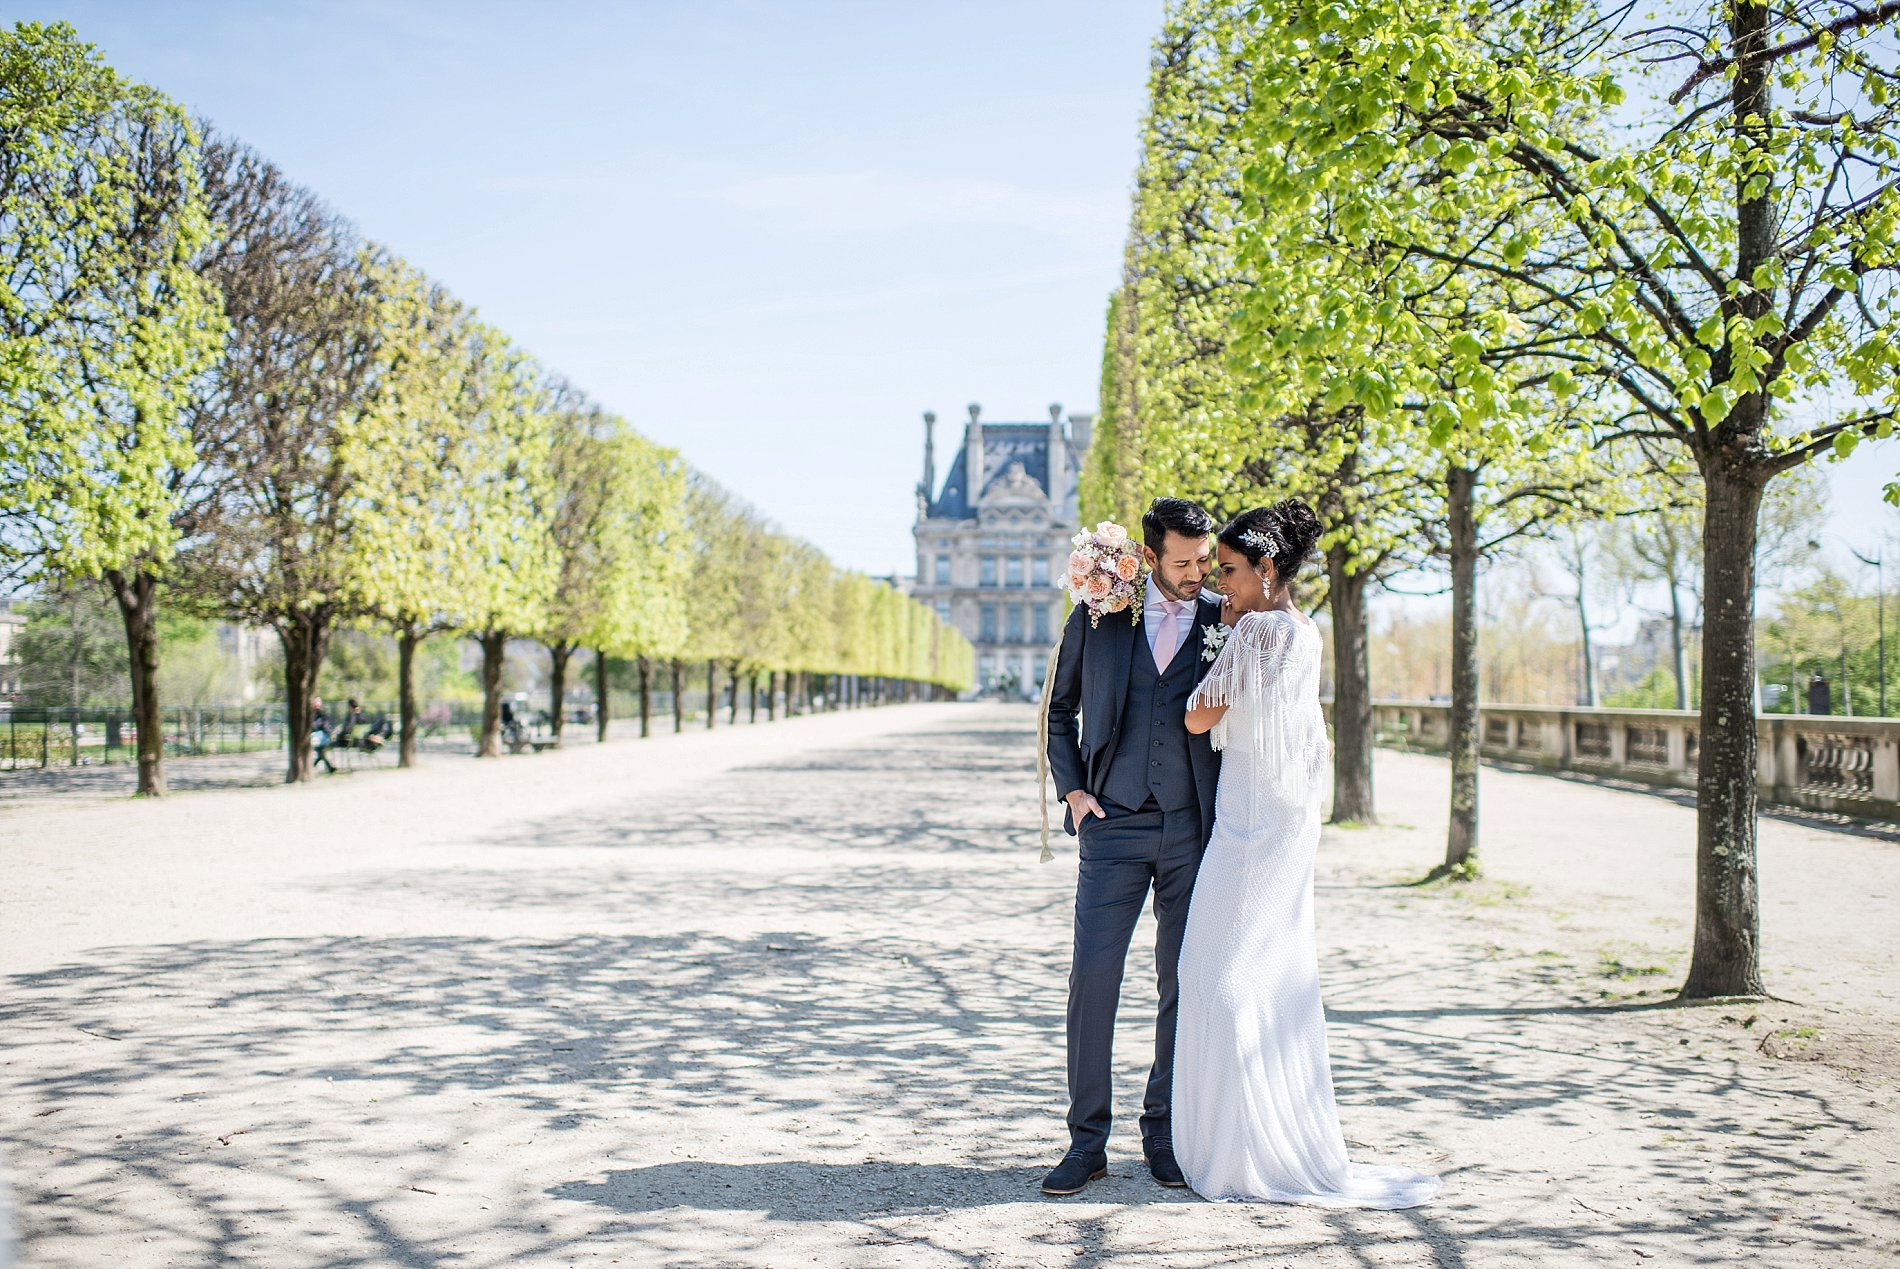 Paris elopement wedding photography by Jane Beadnell Photography-89